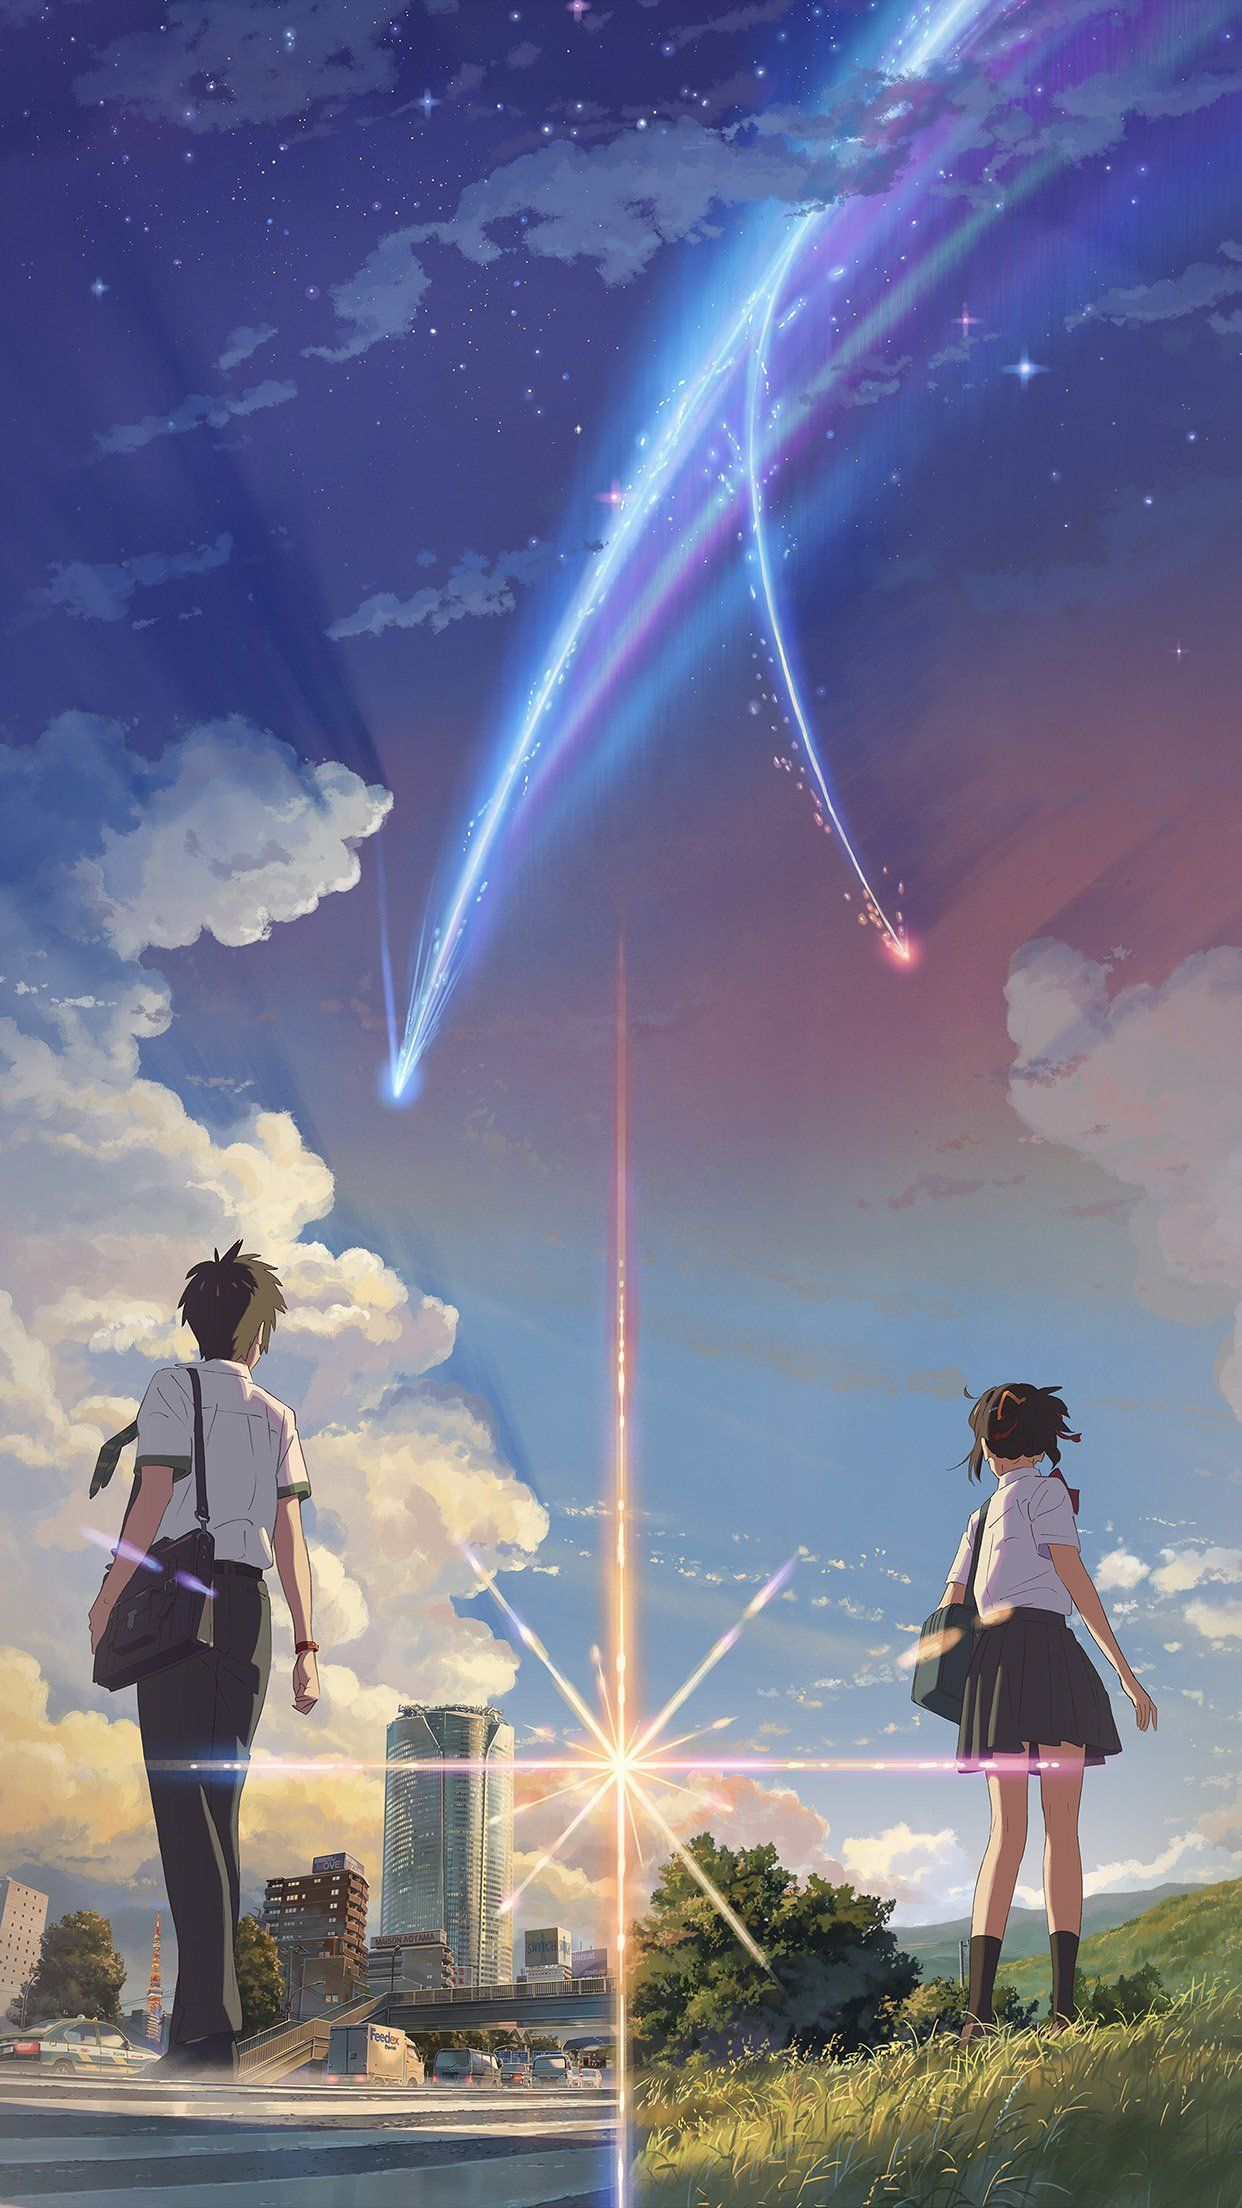 Boy And Girl Anime Art Spring Cute Android Wallpaper Your Android Tablet Ipad Anime Cool Anime Wallpapers Anime Backgrounds Wallpapers Anime Wallpaper Iphone Cute anime wallpapers for your phone